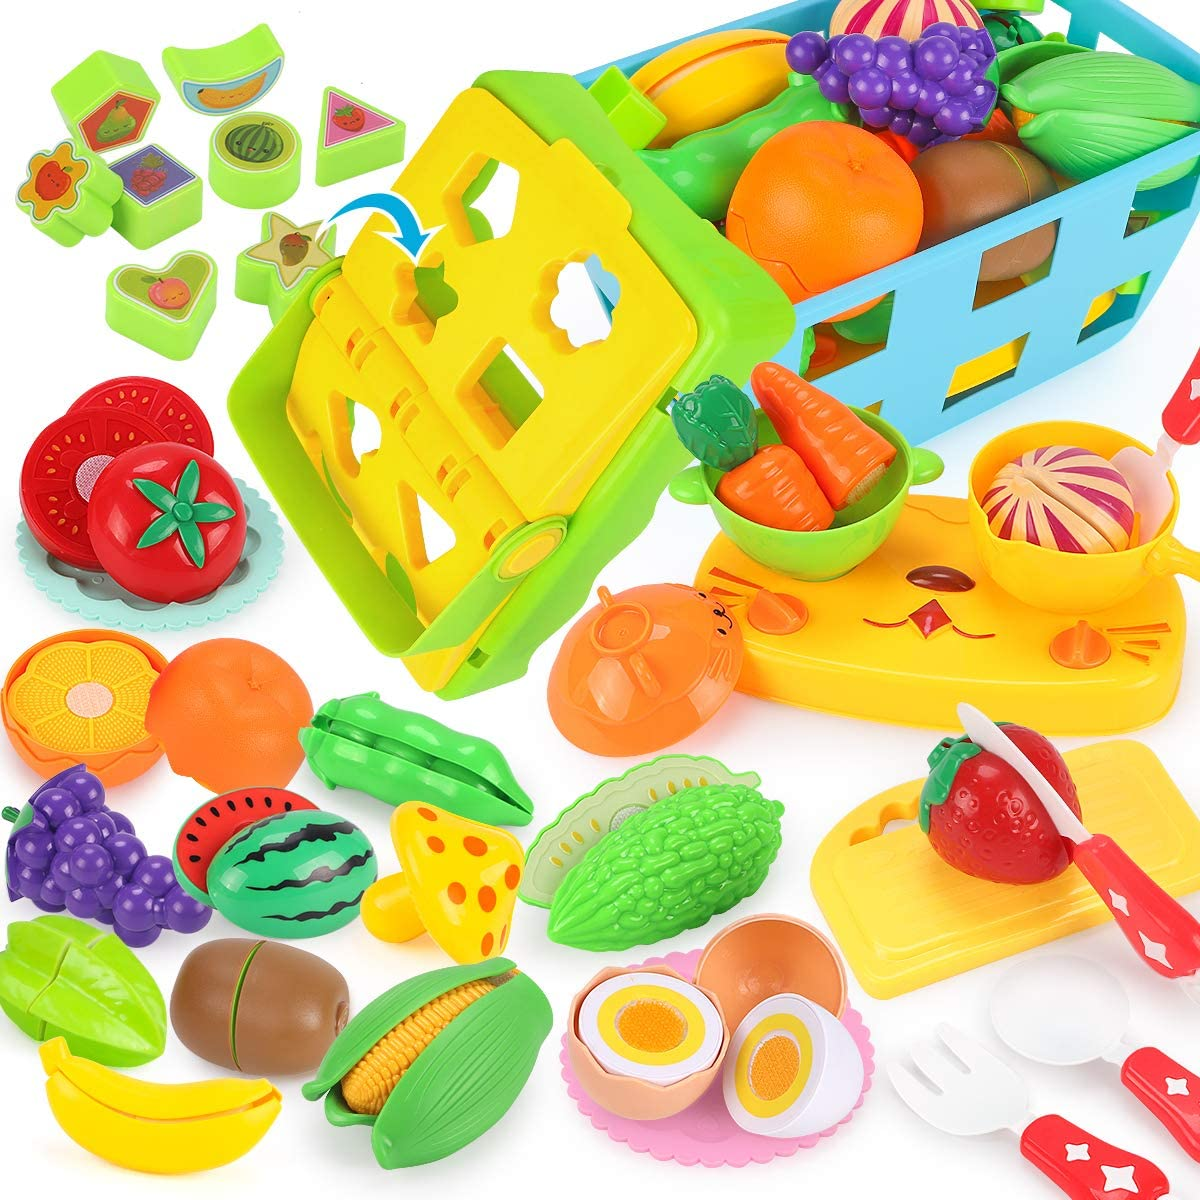 REMOKING Food Toy Set, STEM Fruits Vegetables Basket Toy, Funny Kitchen Pretend Cutting Play Food Set, Educational Tableware Recognition Blocks, Great Giftsfor Kids 3 Years and up(35 Pieces)